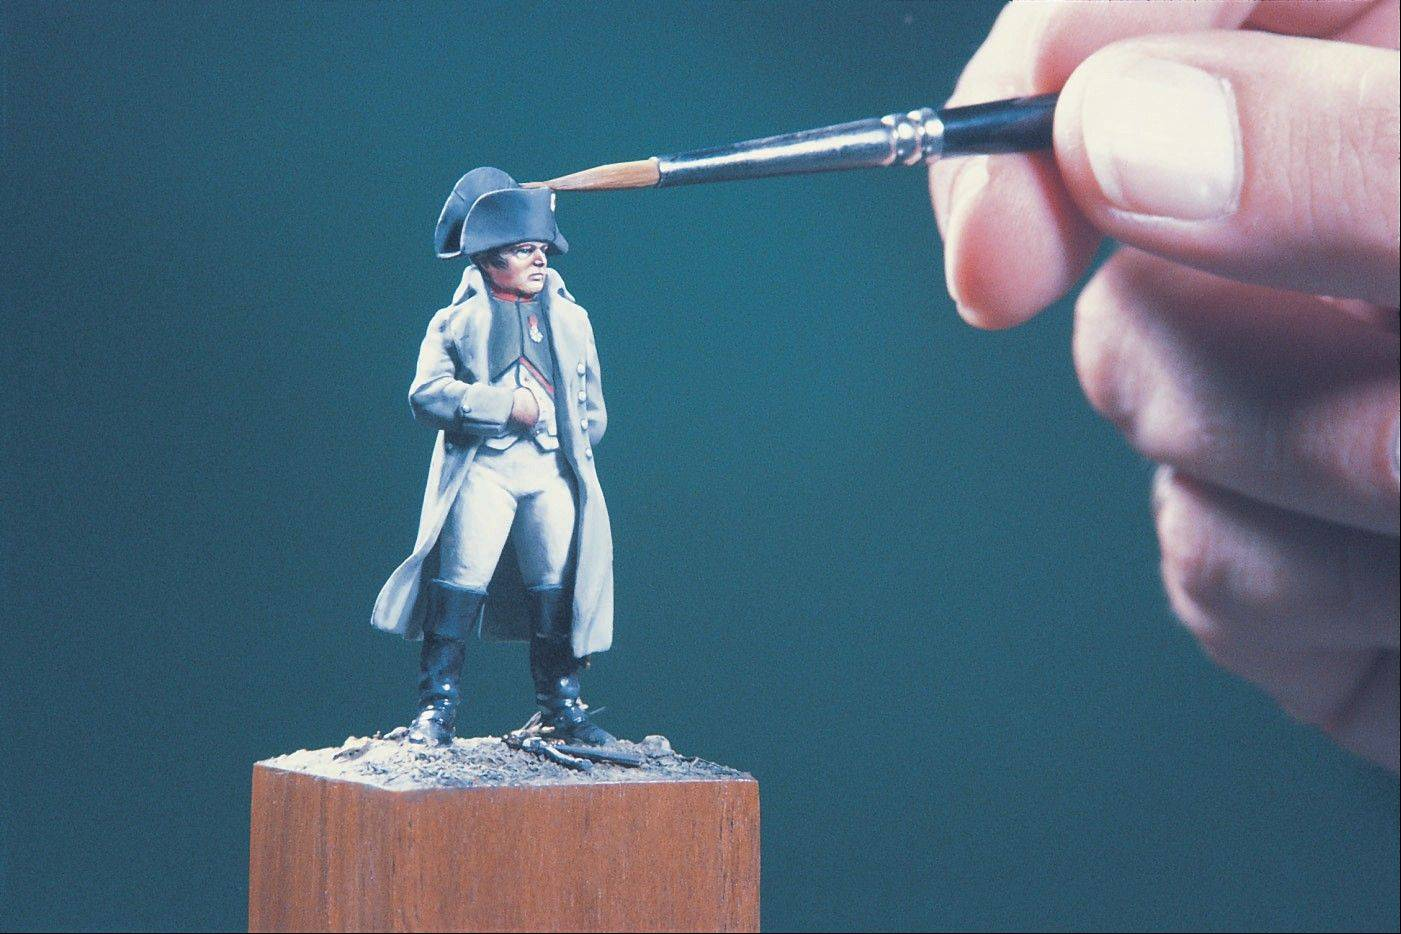 See painted military figurines by both amateur and professional artists at the Military Miniature Society of Illinois Exhibition and Competition.